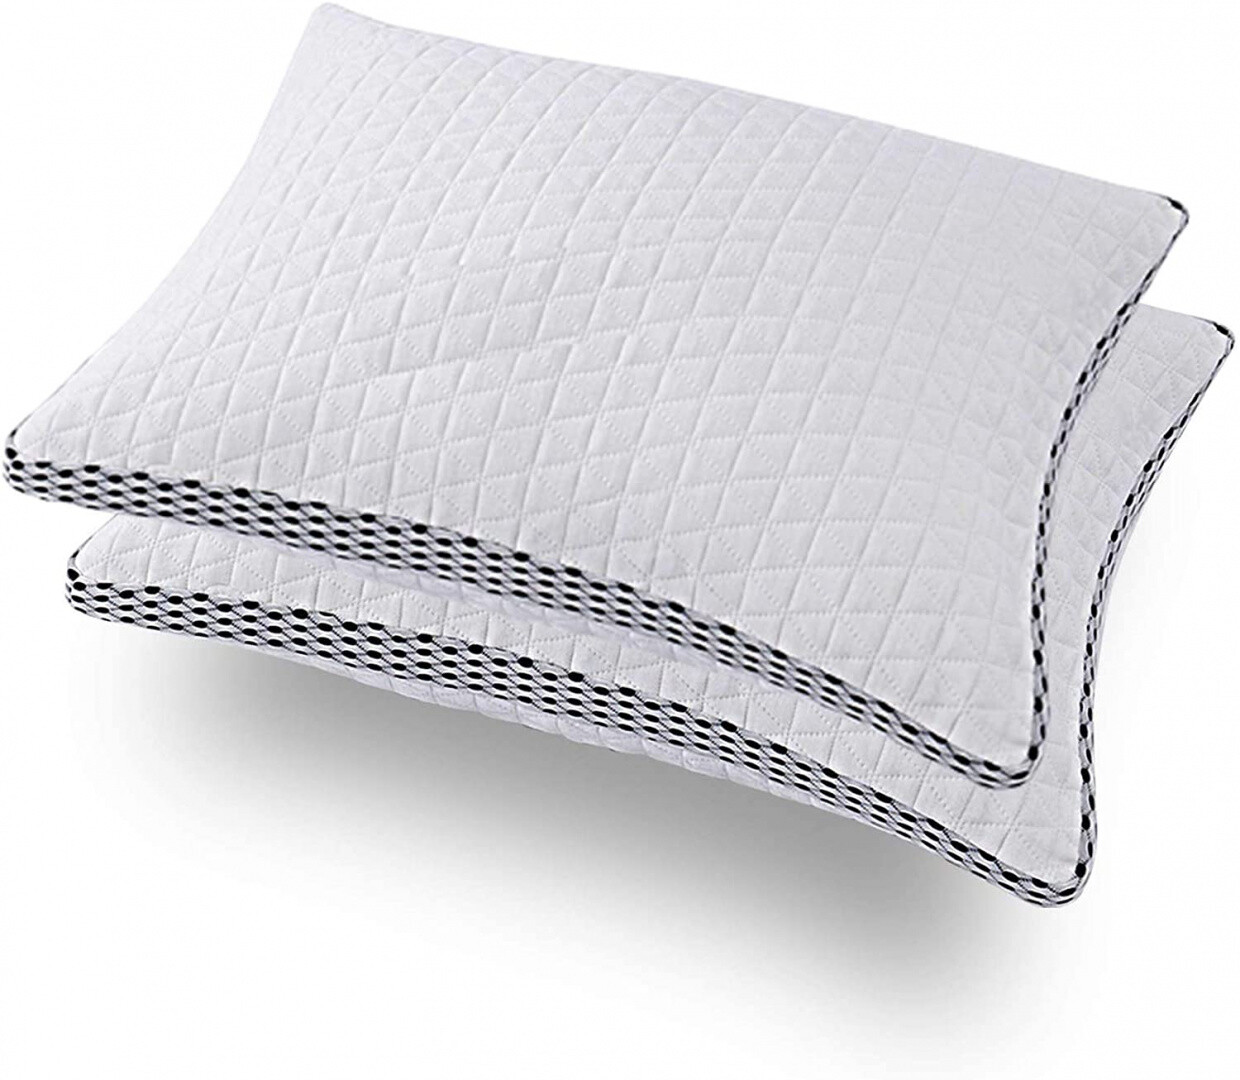 How to choose Cooling Bamboo Pillow